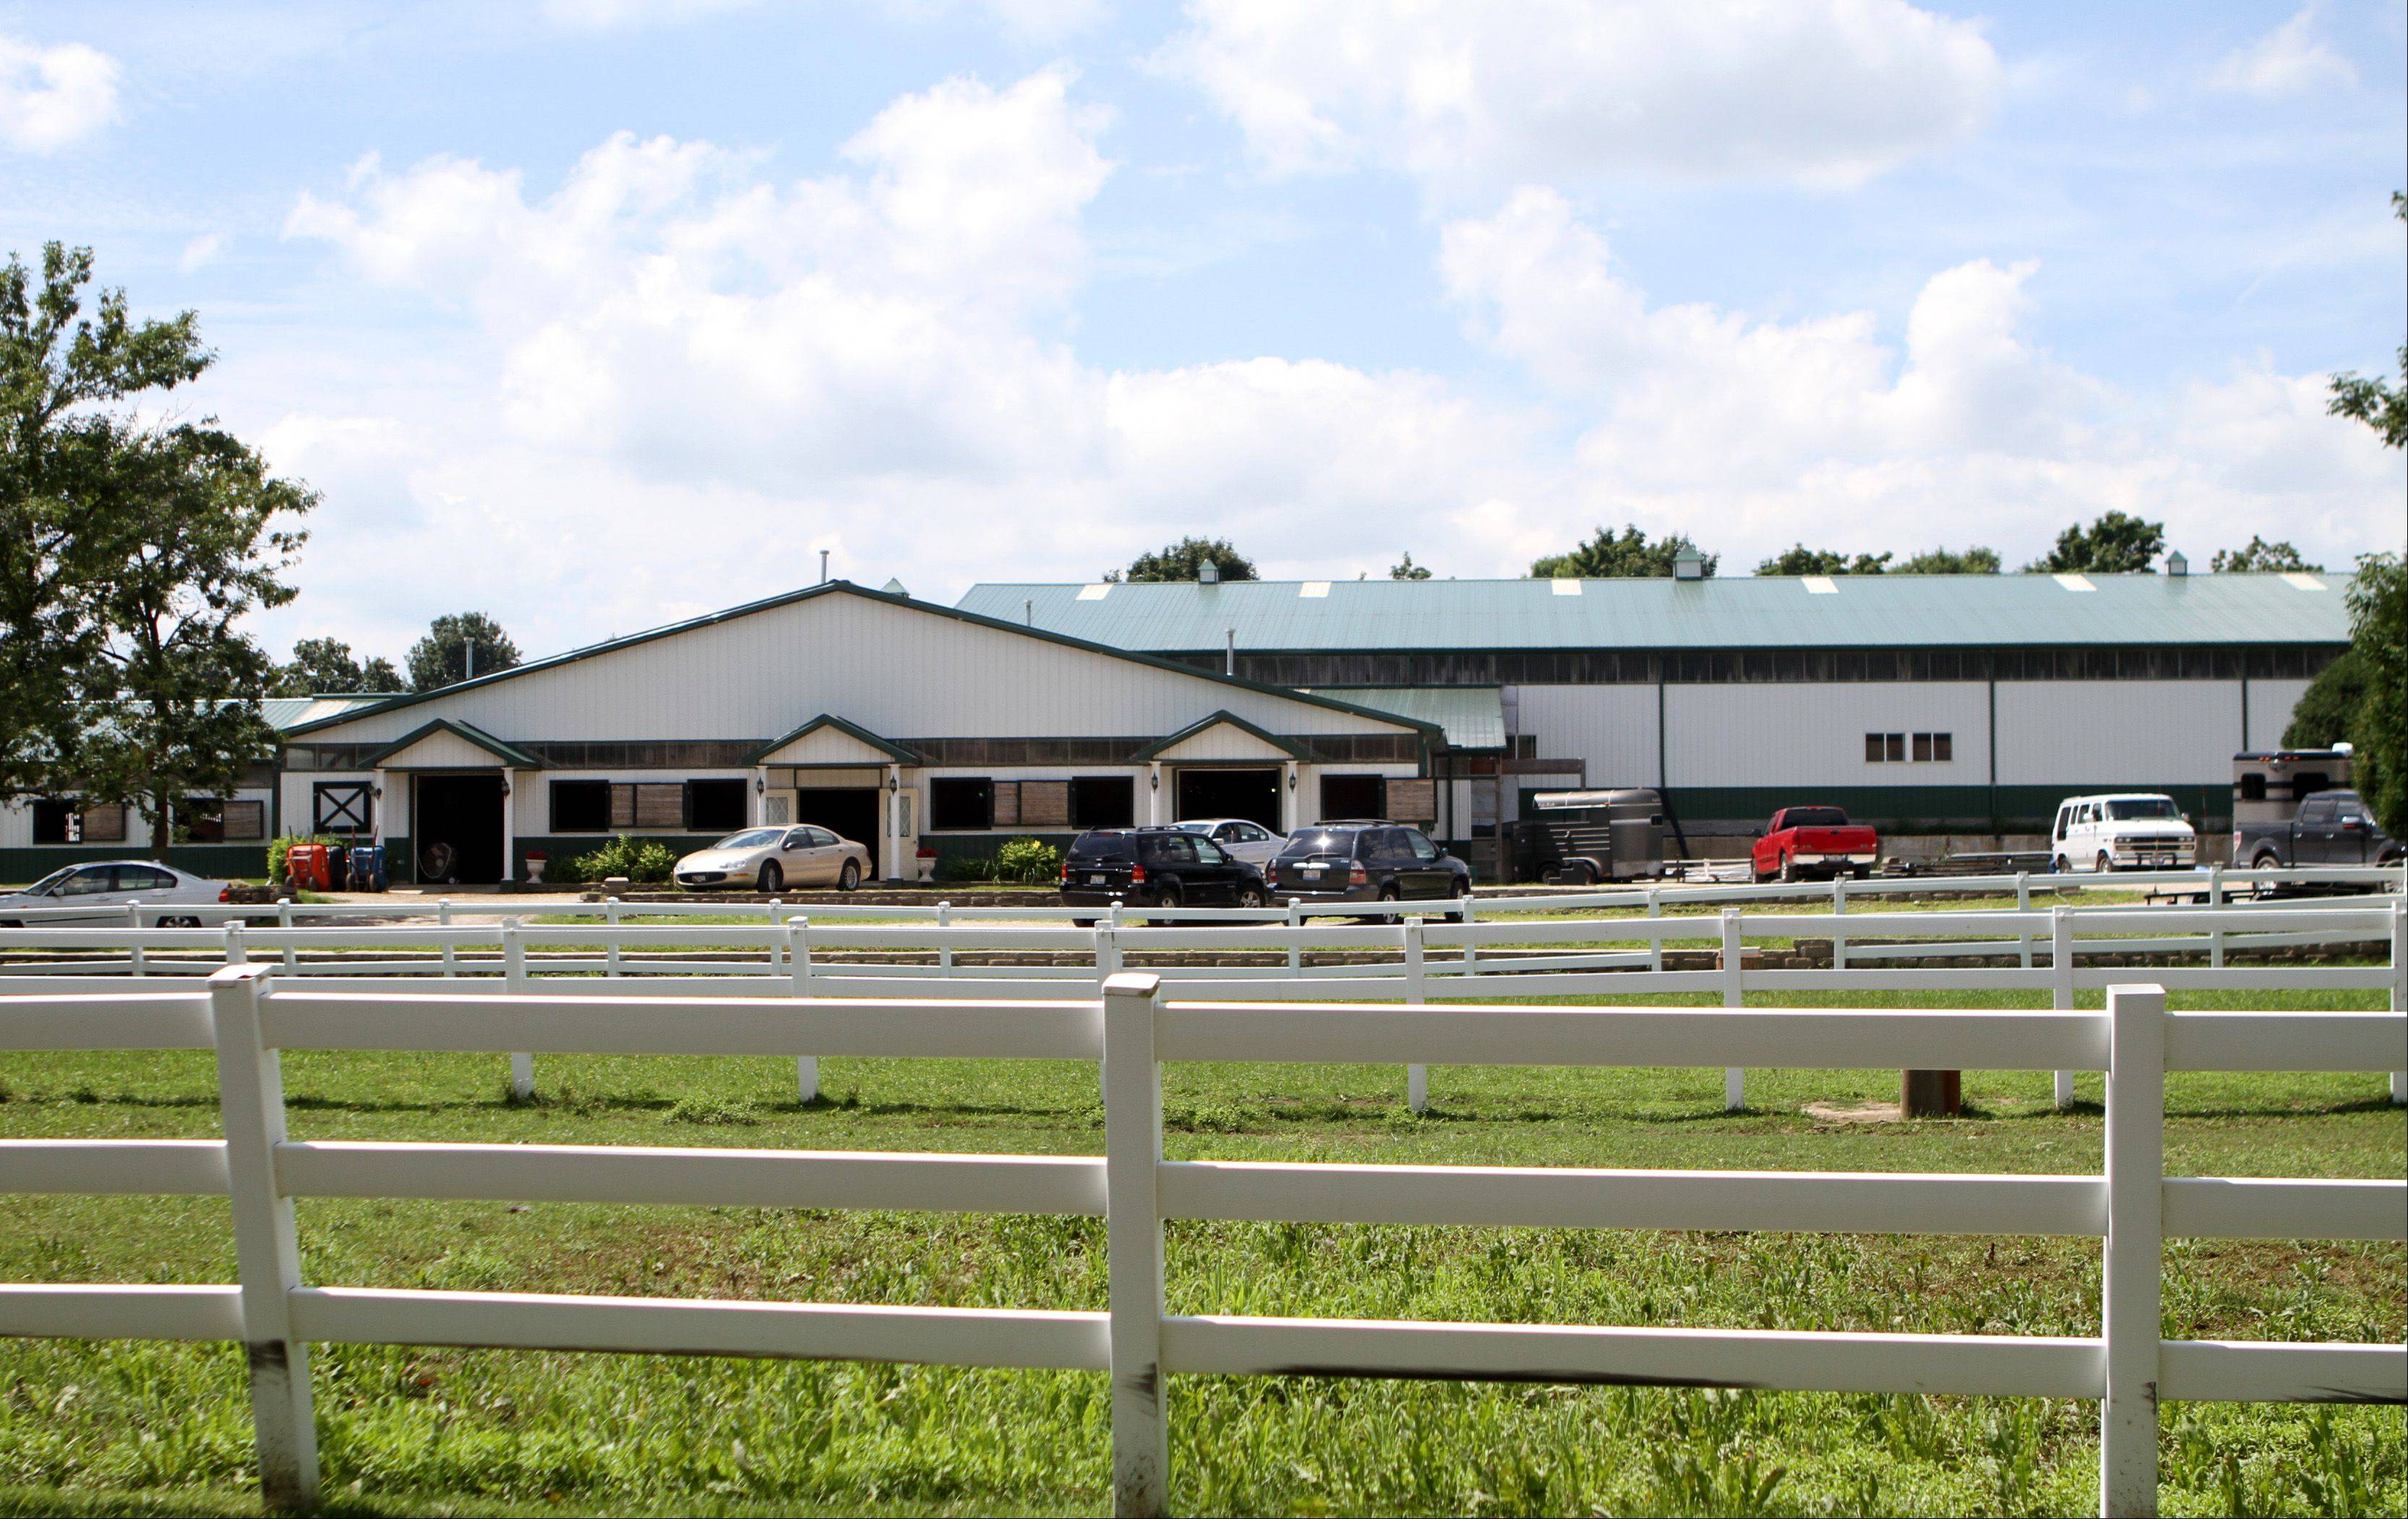 A state appeals court has upheld Barrington Hills' authority to regulate commercial horse boarding operations, like the one at Oakwood Farm on Bateman Road that's been at the center of three years of legal wrangling.